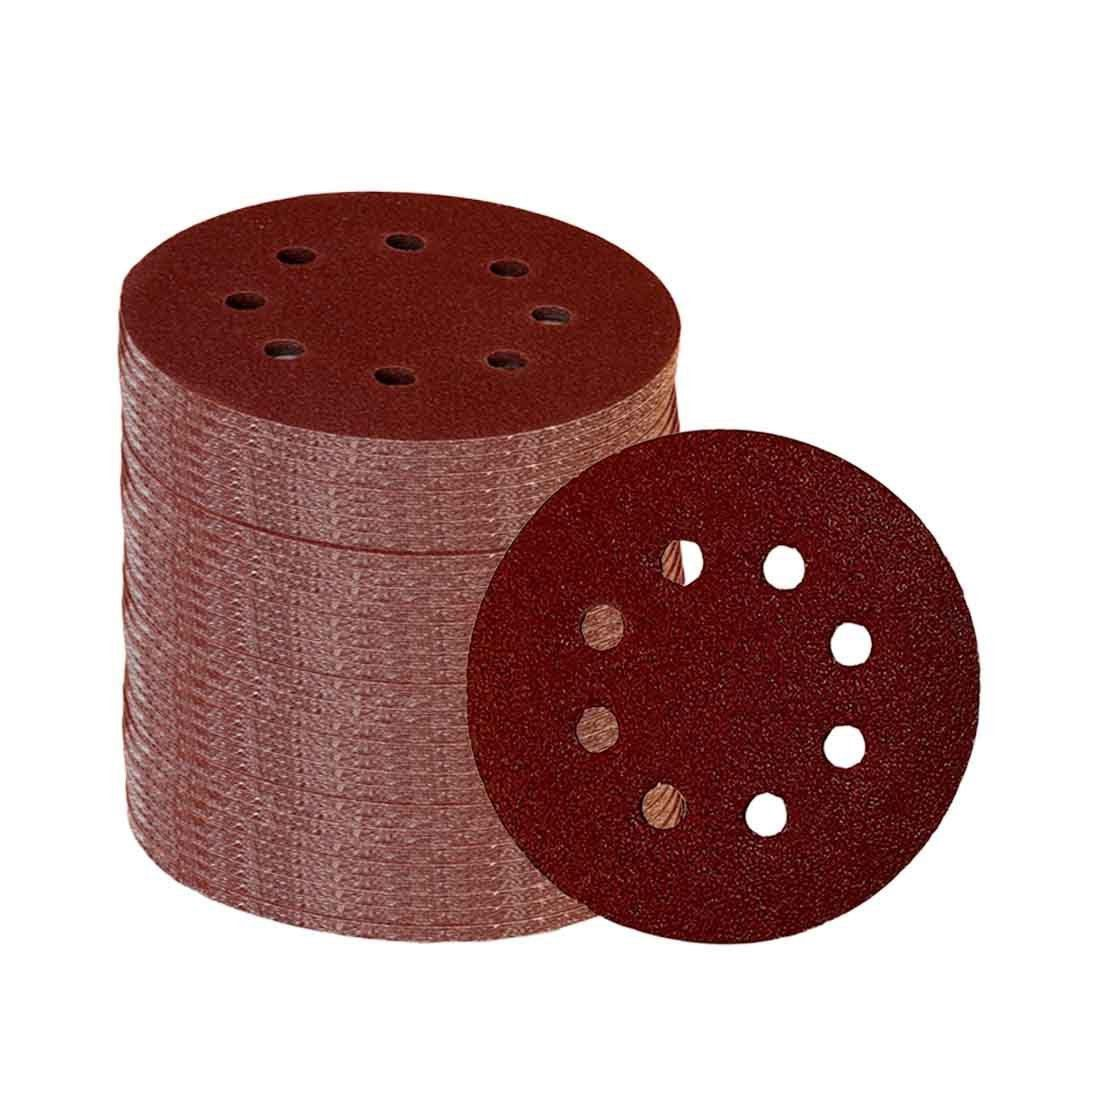 80 Pack 5 inch Sanding Discs Kit 8 Hole Sander for Drill Polishing Pad Hook and Loop Plate 60 80 120 180 240 400 600 800 Grit Sandpaper Abrasive Tool